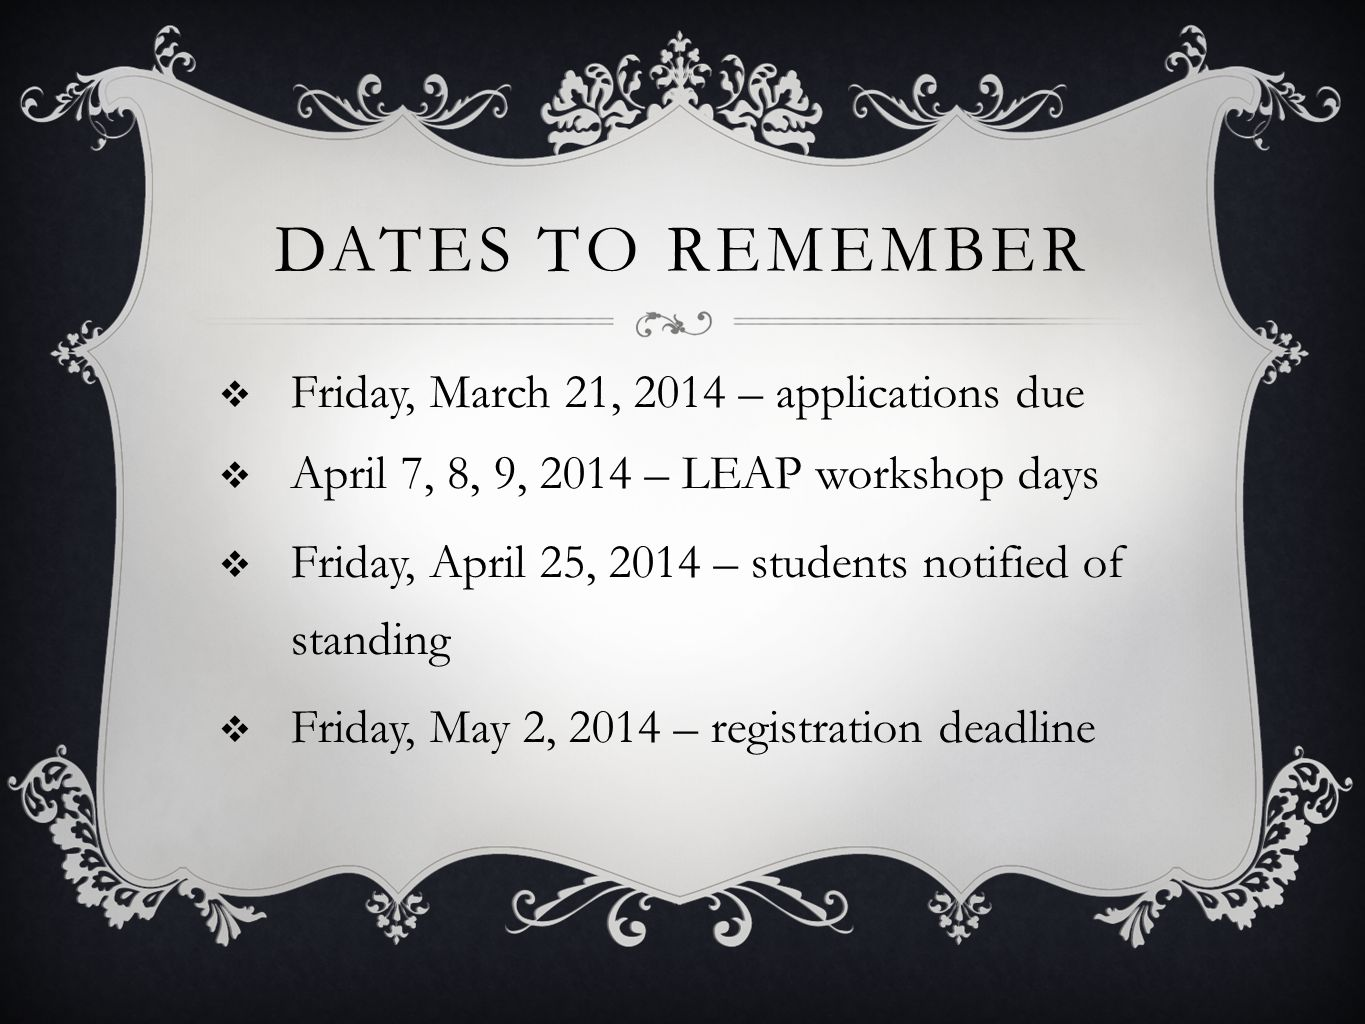 Dates to remember Friday, March 21, 2014 – applications due